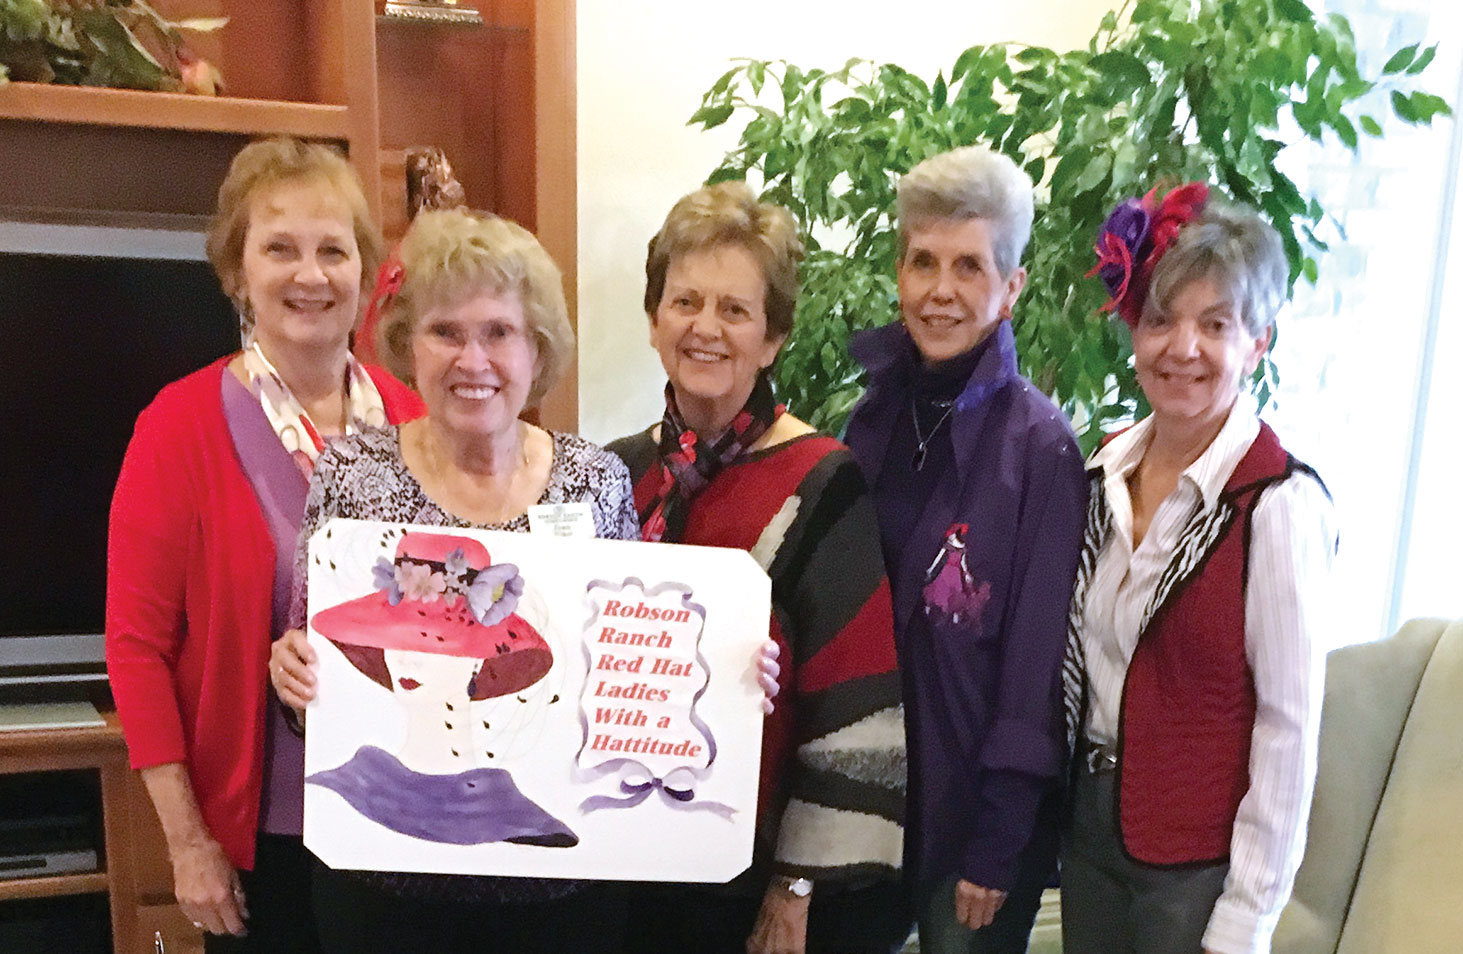 List of Red Hat Lady Hostesses, left to right: April Bayne, Jean Euker, Lynne Hendren, Sally Hampton and Joan Petre